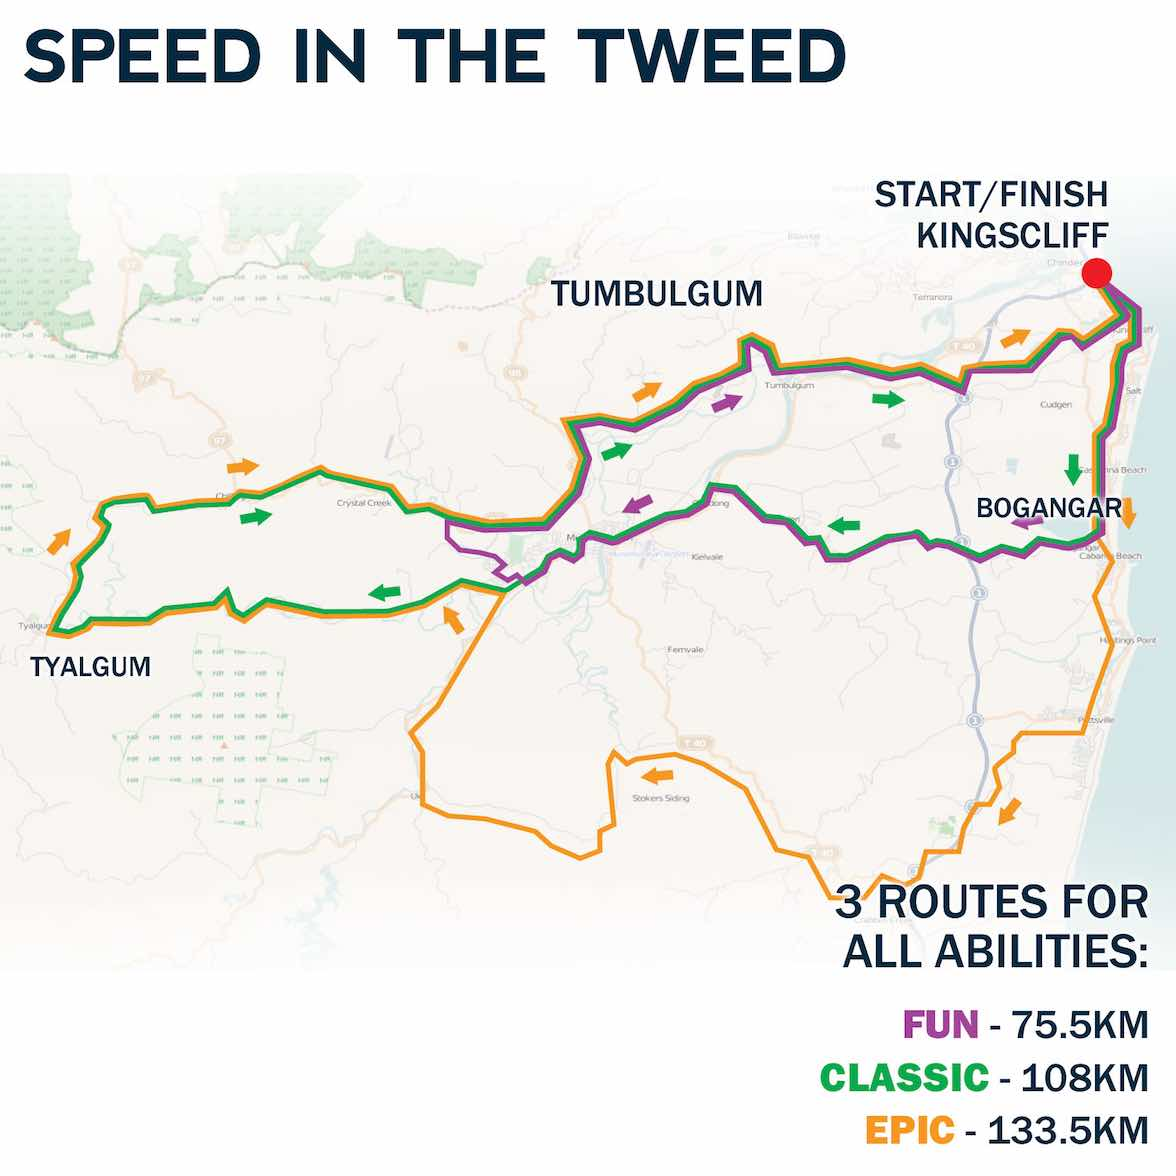 Speed in the Tweed